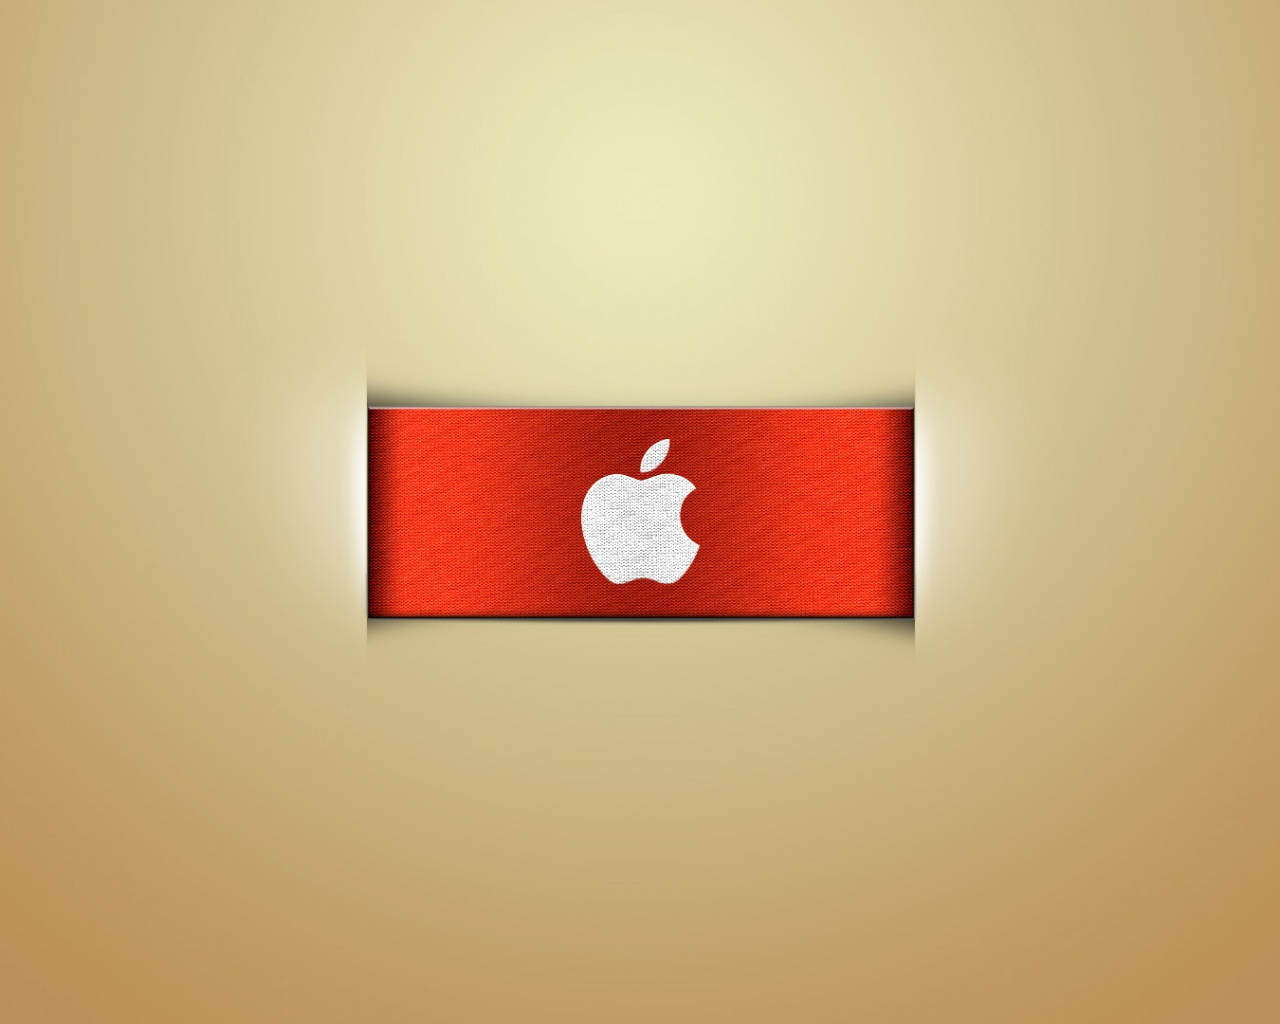 Apple-Logo-Images-Apple-Logo-on-Red-Ribbon-Light-Yellow-Background-is